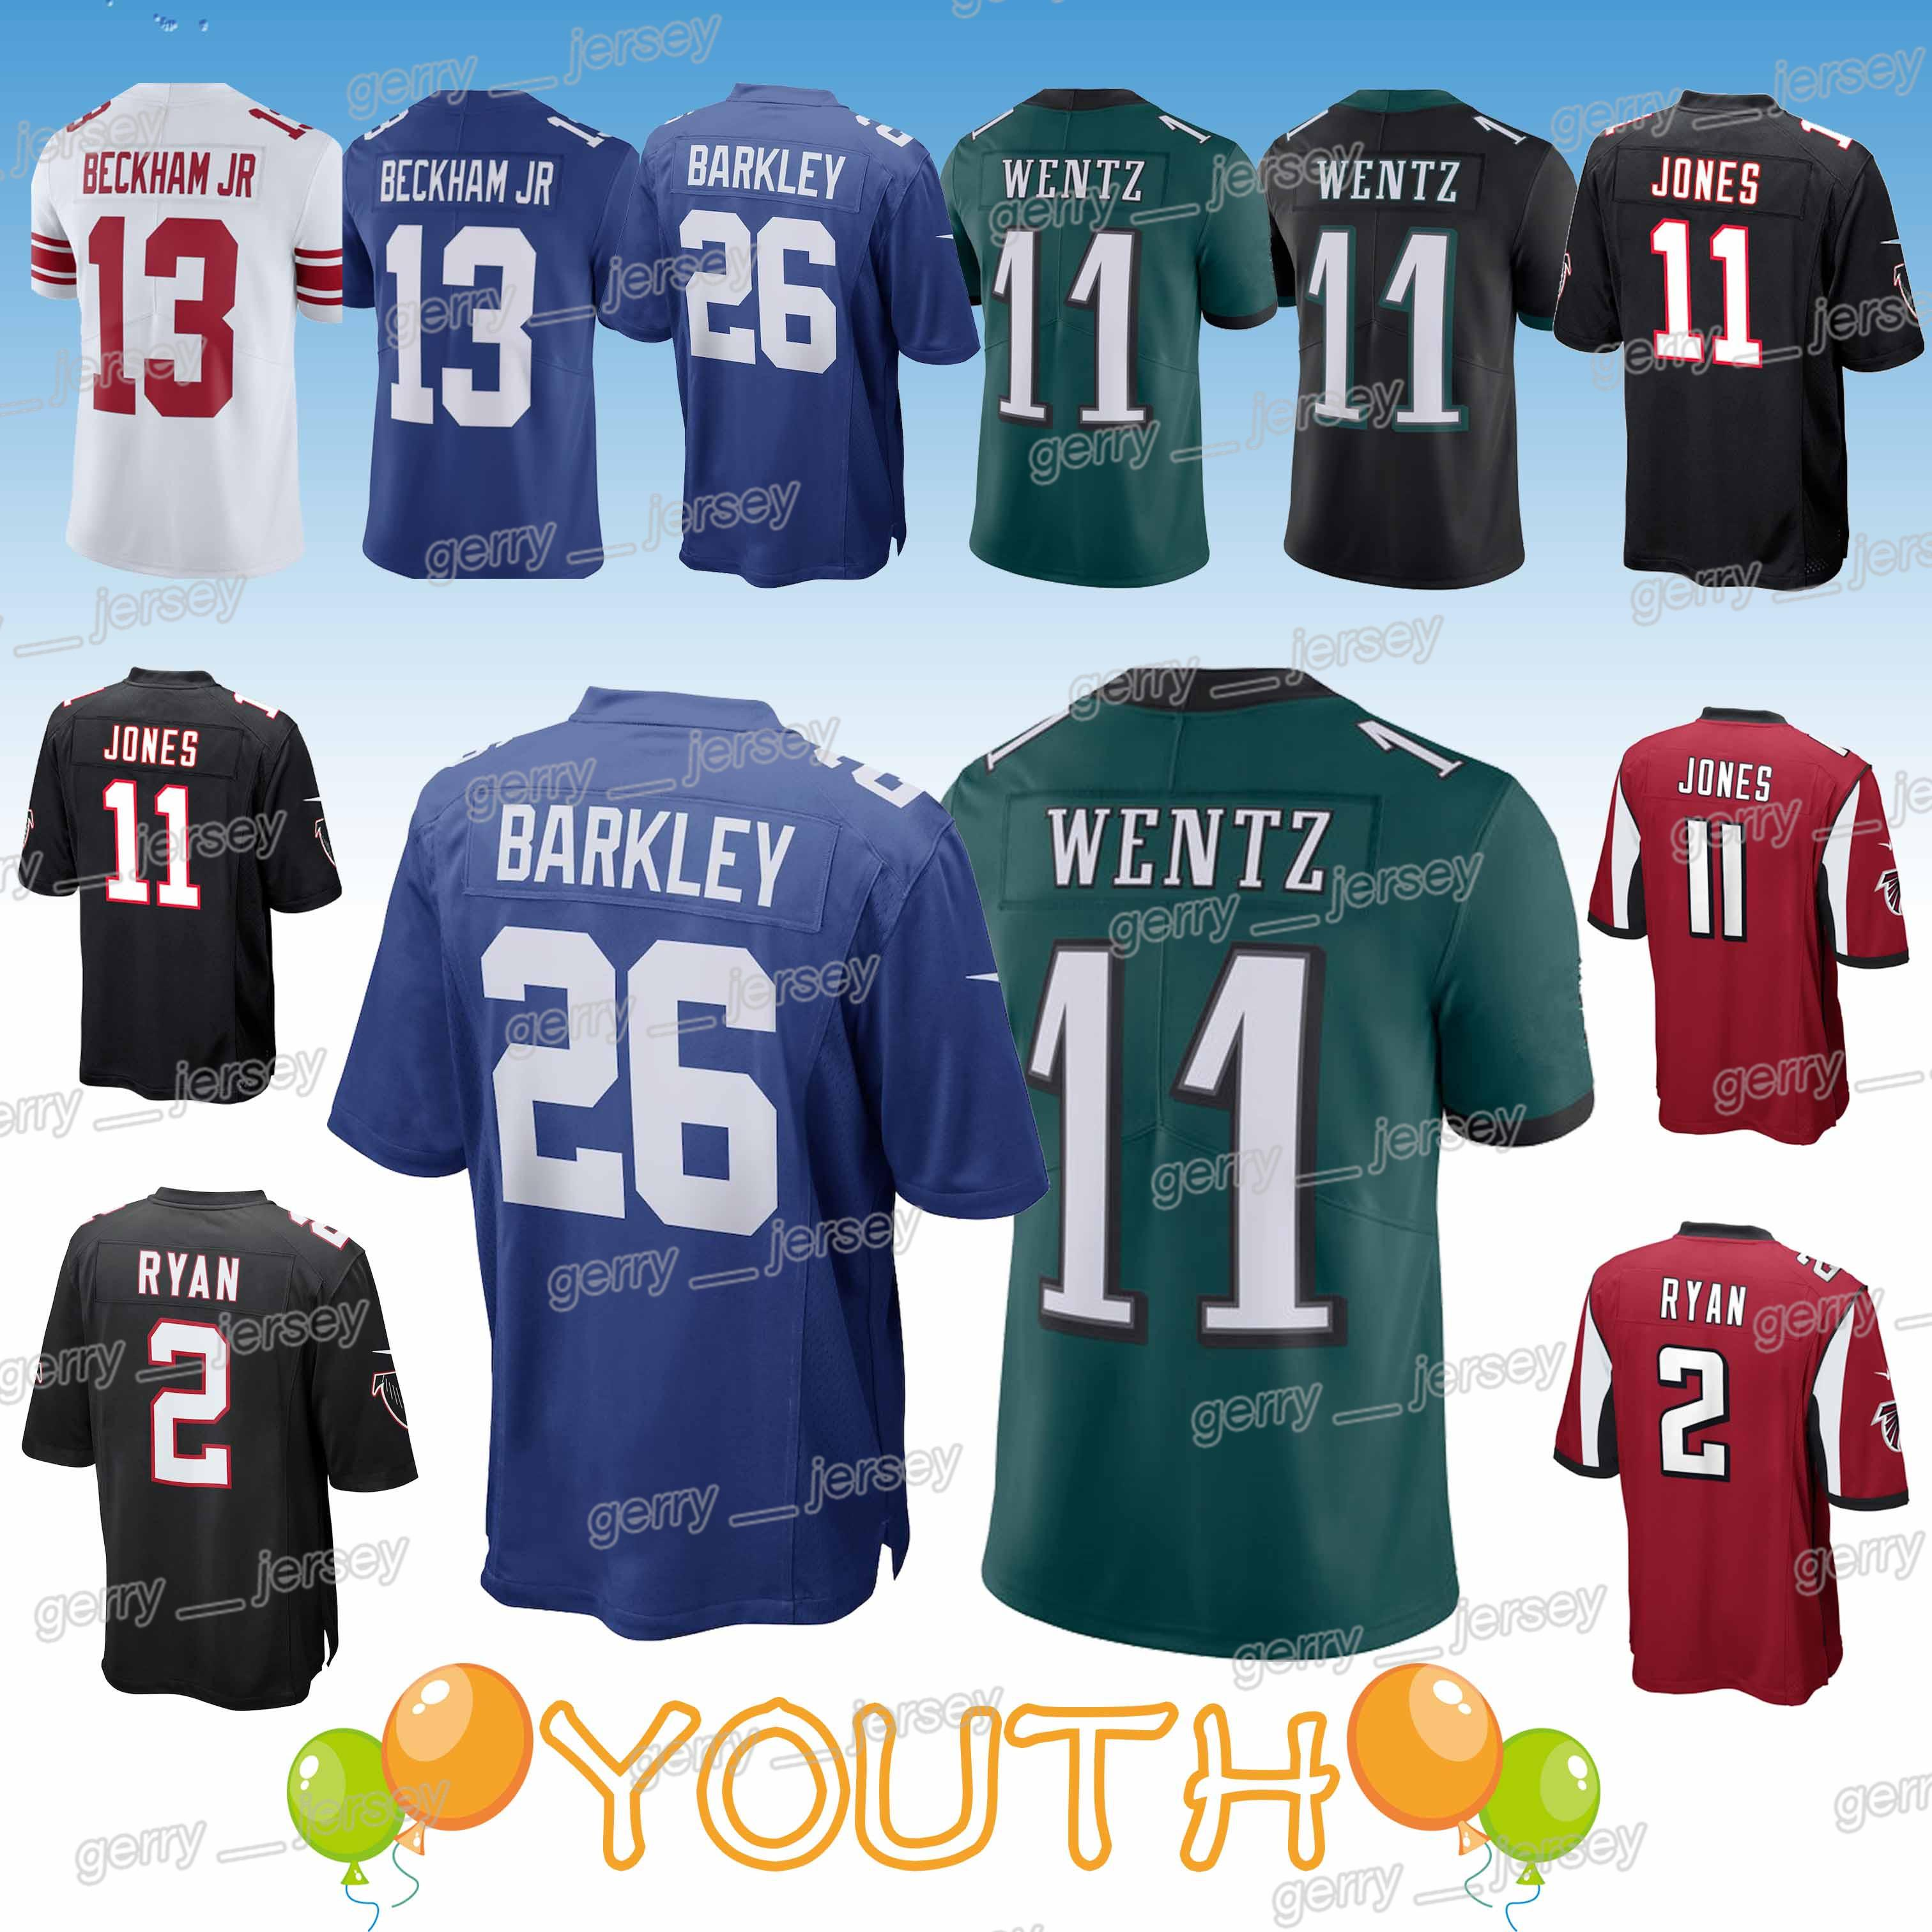 new product 1854f cfd0a YOUTH 26 Saquon Barkley 13 Odell Beckham Philadelphia New Eagle York Gaint  Atlanta jerseys Falcon 2019 jersey Kids Design sweater